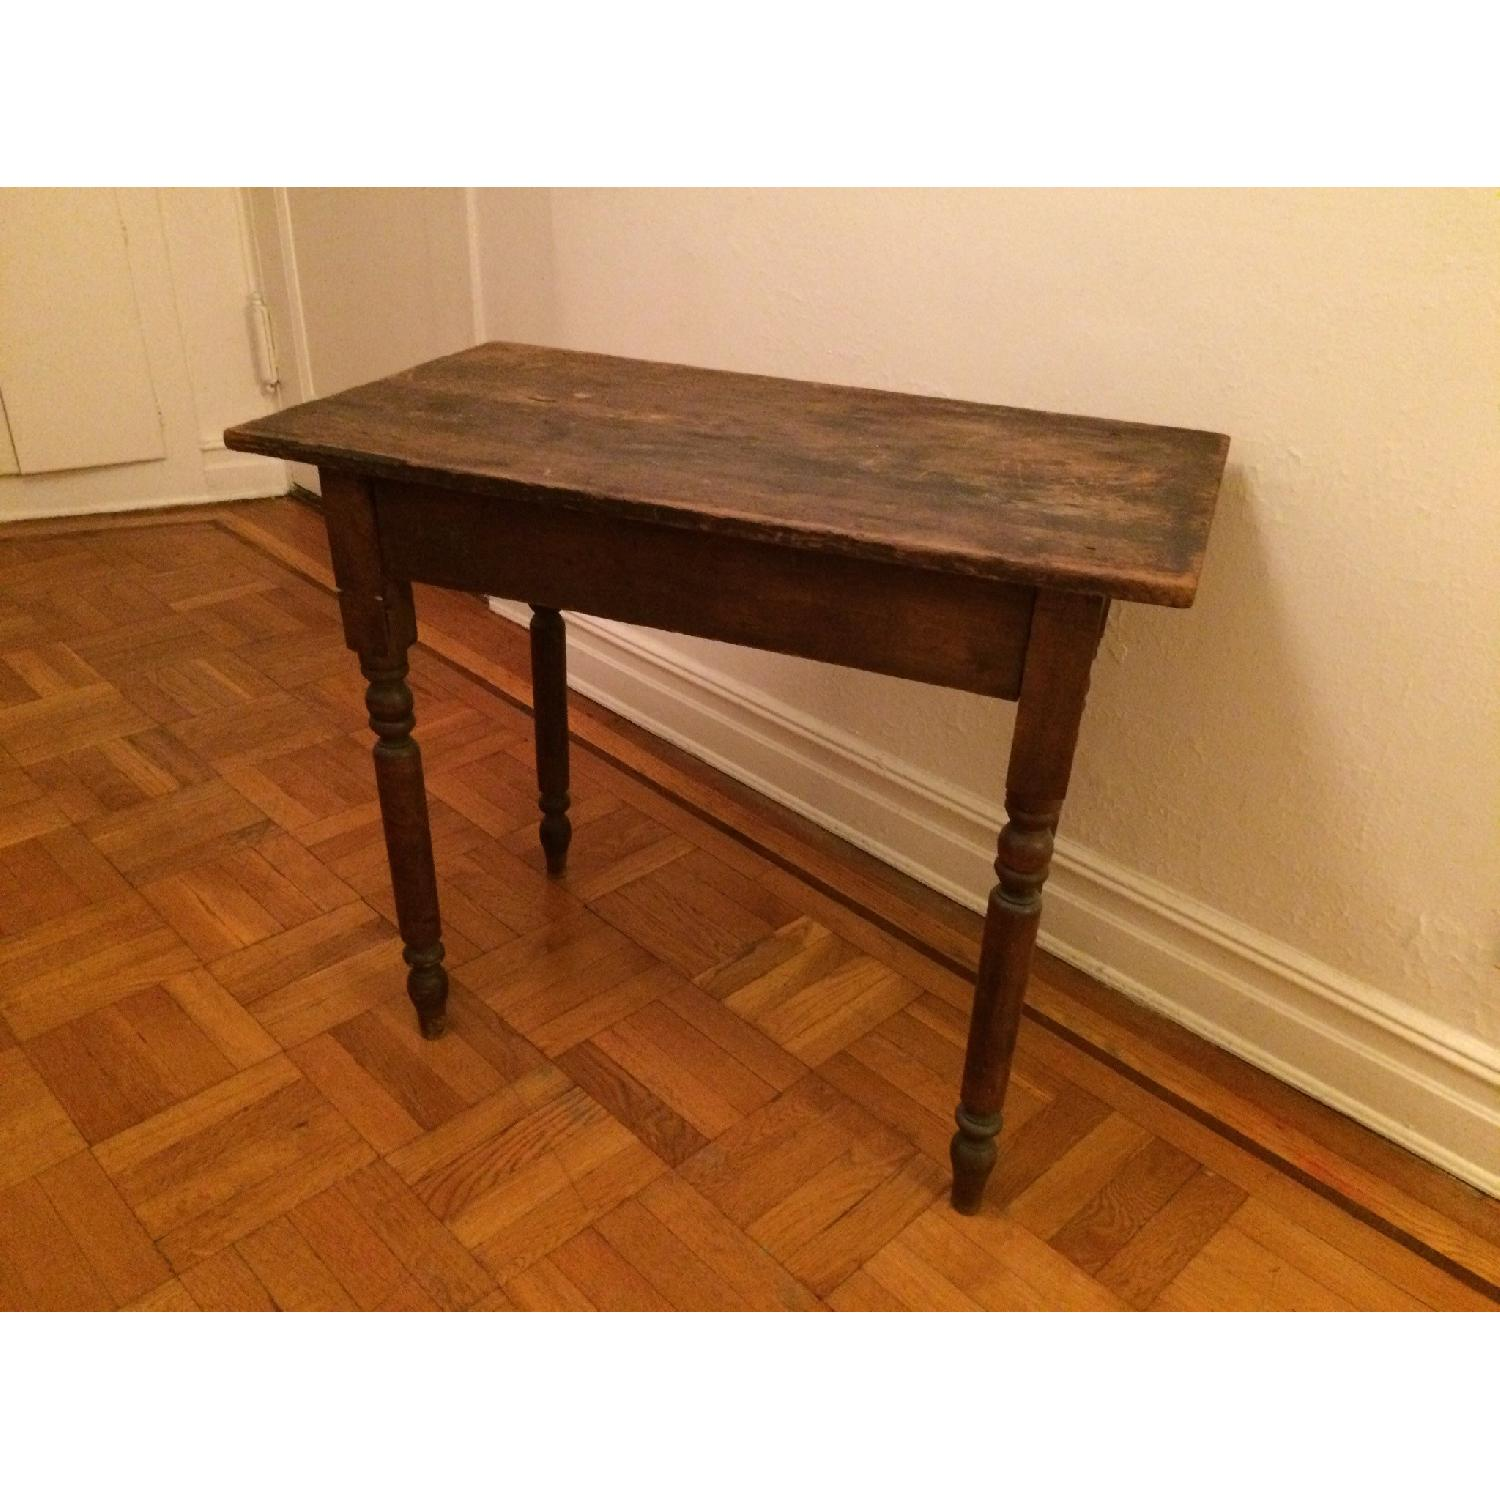 Antique Small Rustic Table - image-3